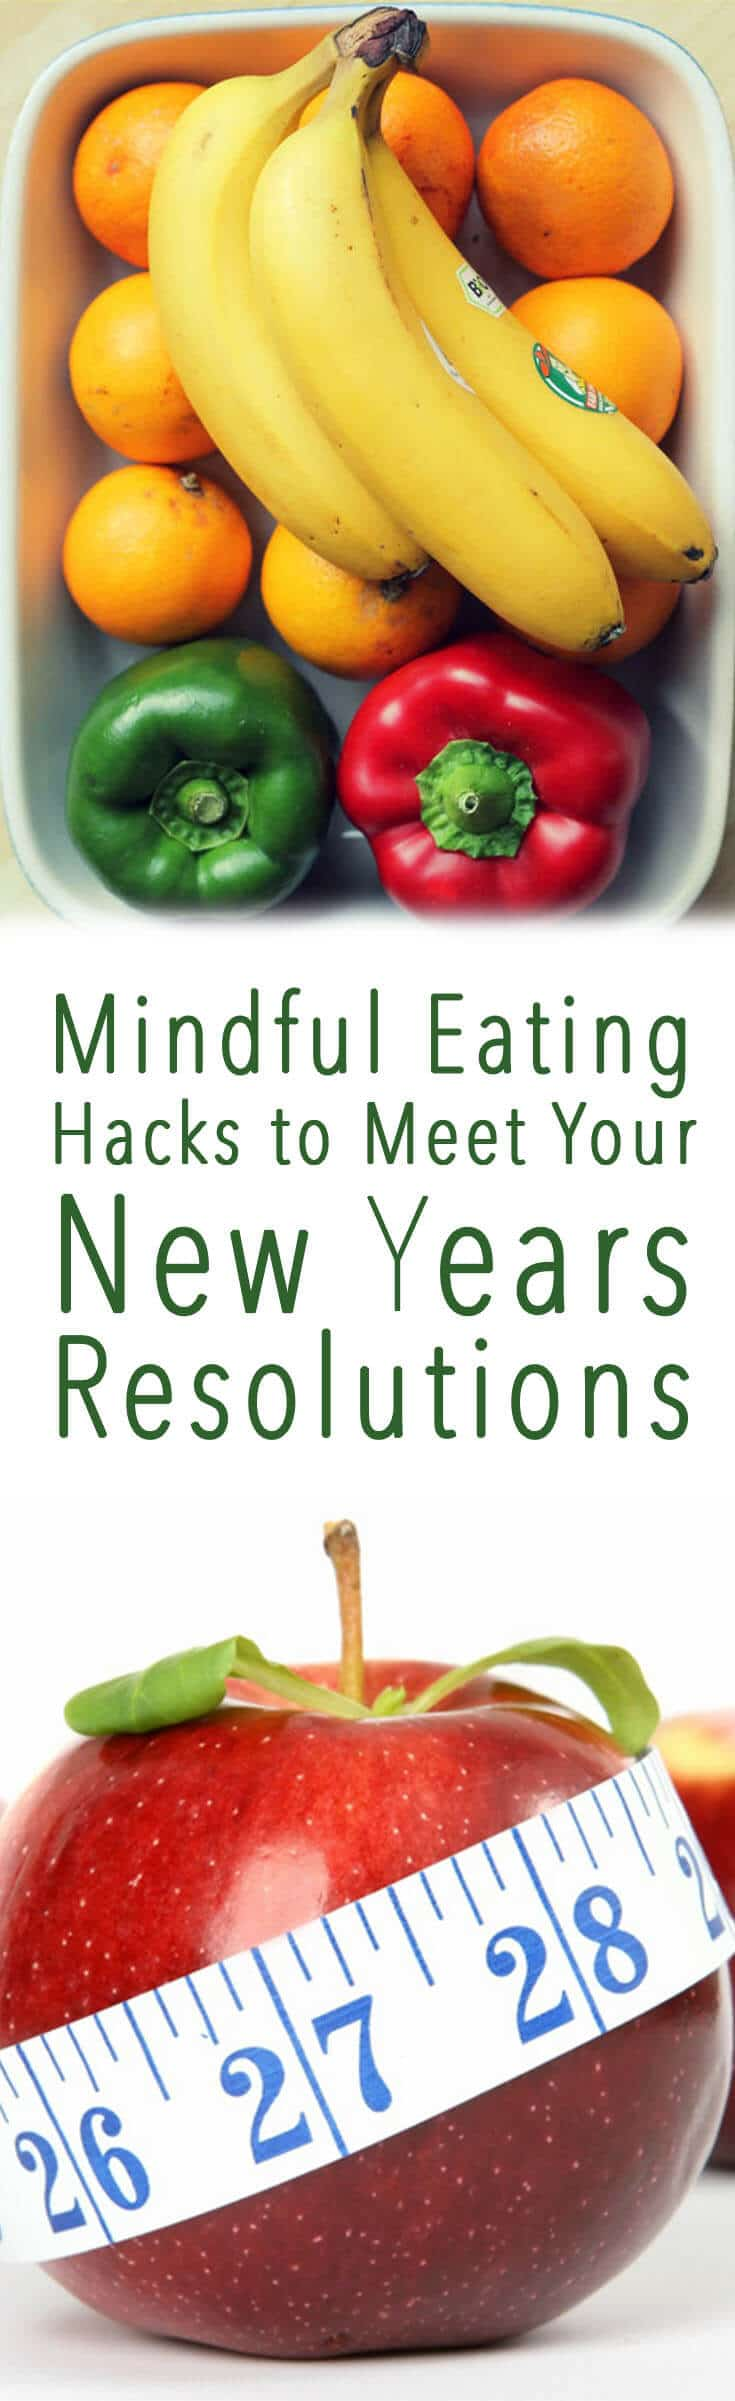 I share my top five super easy mindful eating hacks that will trick you into eating more healthy without even thinking to meet your New Years Resolutions.